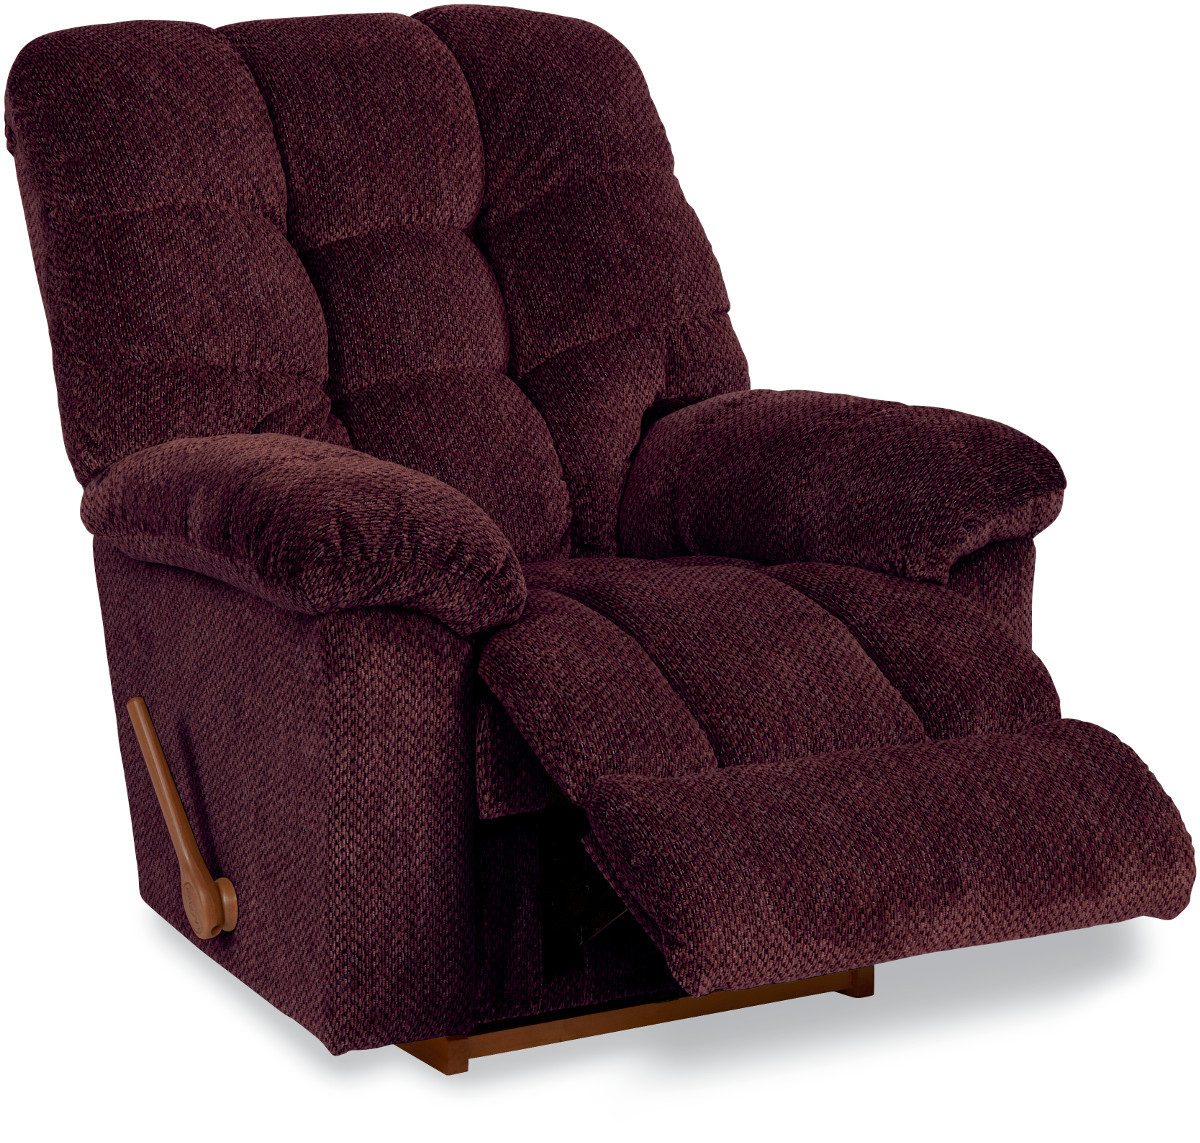 The Gibson Reclina Way Recliner Sold At Rose Brothers